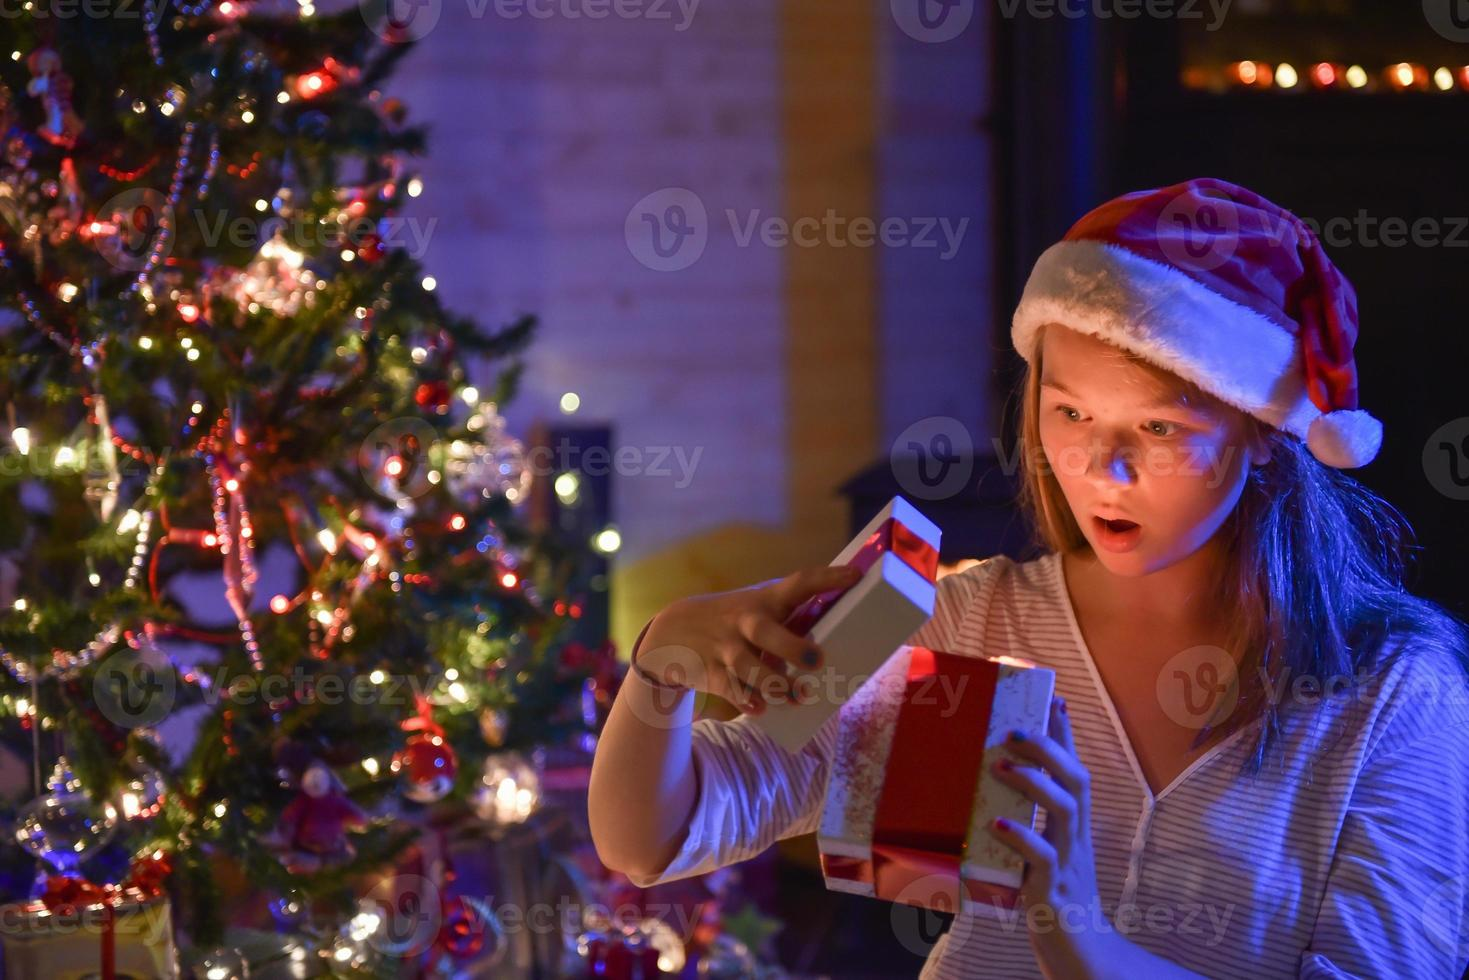 Christmastime, an expressive young girl opening her gift-box photo